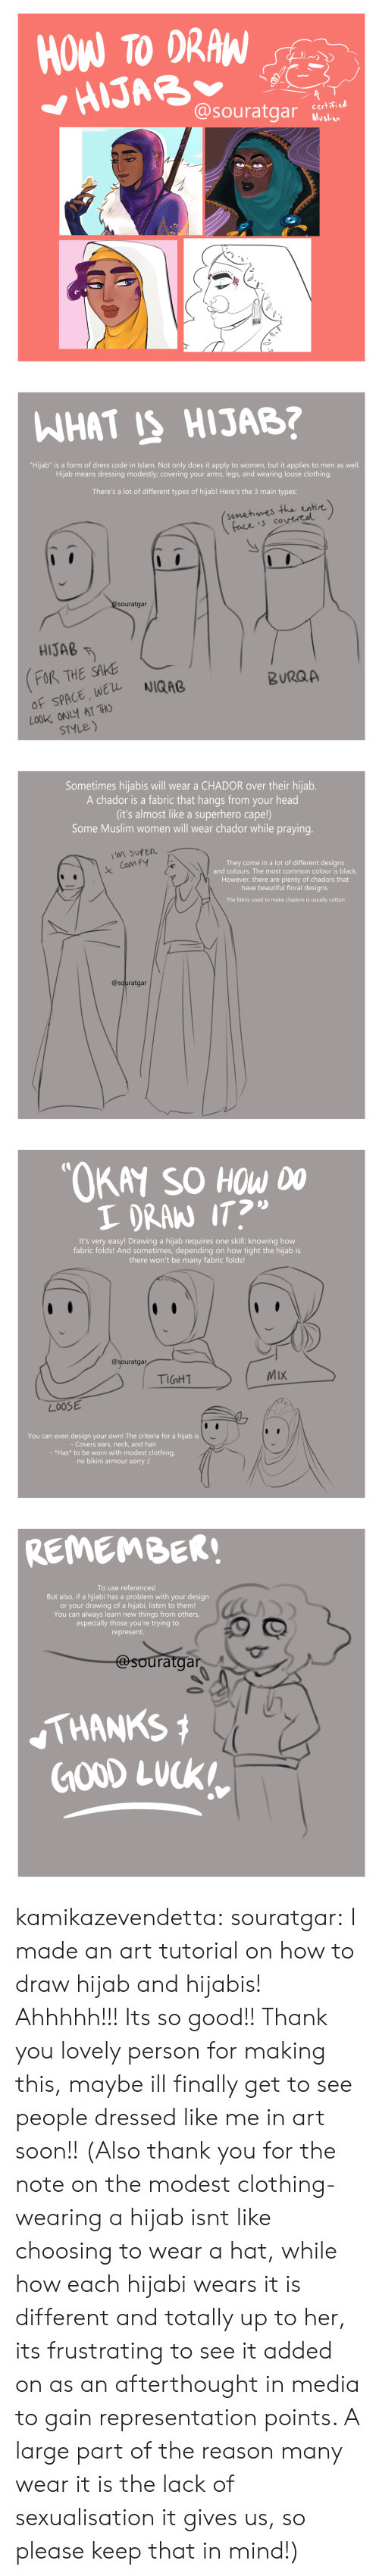 "gain: HOW TO DRAW  HIJAB  @souratgar  certified  Muslim   WHAT IS HIJAB?  ""Hijab"" is a form of dress code in Islam. Not only does it apply to women, but it applies to men as well.  Hijab means dressing modestly; covering your arms, legs, and wearing loose clothing.  There's a lot of different types of hijab! Here's the 3 main types:  (somehimes the entire)  face is covereel  @Souratgar  HIJAB  FOR THE SAKE  OF SPACE, WEL  LOOK ONLY AT THO  STYLE)  NIQAB  BURQA   Sometimes hijabis will wear a CHADOR over their hijab.  A chador is a fabric that hangs from your head  (it's almost like a superhero cape!)  Some Muslim women will wear chador while praying.  M SUPER  They come in a lot of different designs  and colours. The most common colour is black.  Com FY  However, there are plenty of chadors that  have beautiful floral designs.  The fabric used to make chadors is usually cotton.  @souratgar   ""OKAY SO HOW DO  I DRAN IT?  It's very easy! Drawing a hijab requi res one skill: knowing how  fabric folds! And sometimes, depending on how tight the hijab is  there won't be many fabric folds!  @souratgar  MIX  TIGHT  LOOSE  You can even design your own! The criteria for a hijab is  - Covers ears, neck, and hair  - *Has* to be worn with modest clothing,  no bikini armour sorry :(   REMEMBER!  To use references!  But also, if a hijiabi has a problem with your design  or your drawing of a hijabi, listen to them!  You can always learn new things from others,  especially those you're trying to  represent.  @souratgar  THANKS  GOOD LUCK kamikazevendetta:  souratgar: I made an art tutorial on how to draw hijab and hijabis! Ahhhhh!!! Its so good!! Thank you lovely person for making this, maybe ill finally get to see people dressed like me in art soon!!   (Also thank you for the note on the modest clothing- wearing a hijab isnt like choosing to wear a hat, while how each hijabi wears it is different and totally up to her, its frustrating to see it added on as an afterthought in media to gain representation points. A large part of the reason many wear it is the lack of sexualisation it gives us, so please keep that in mind!)"